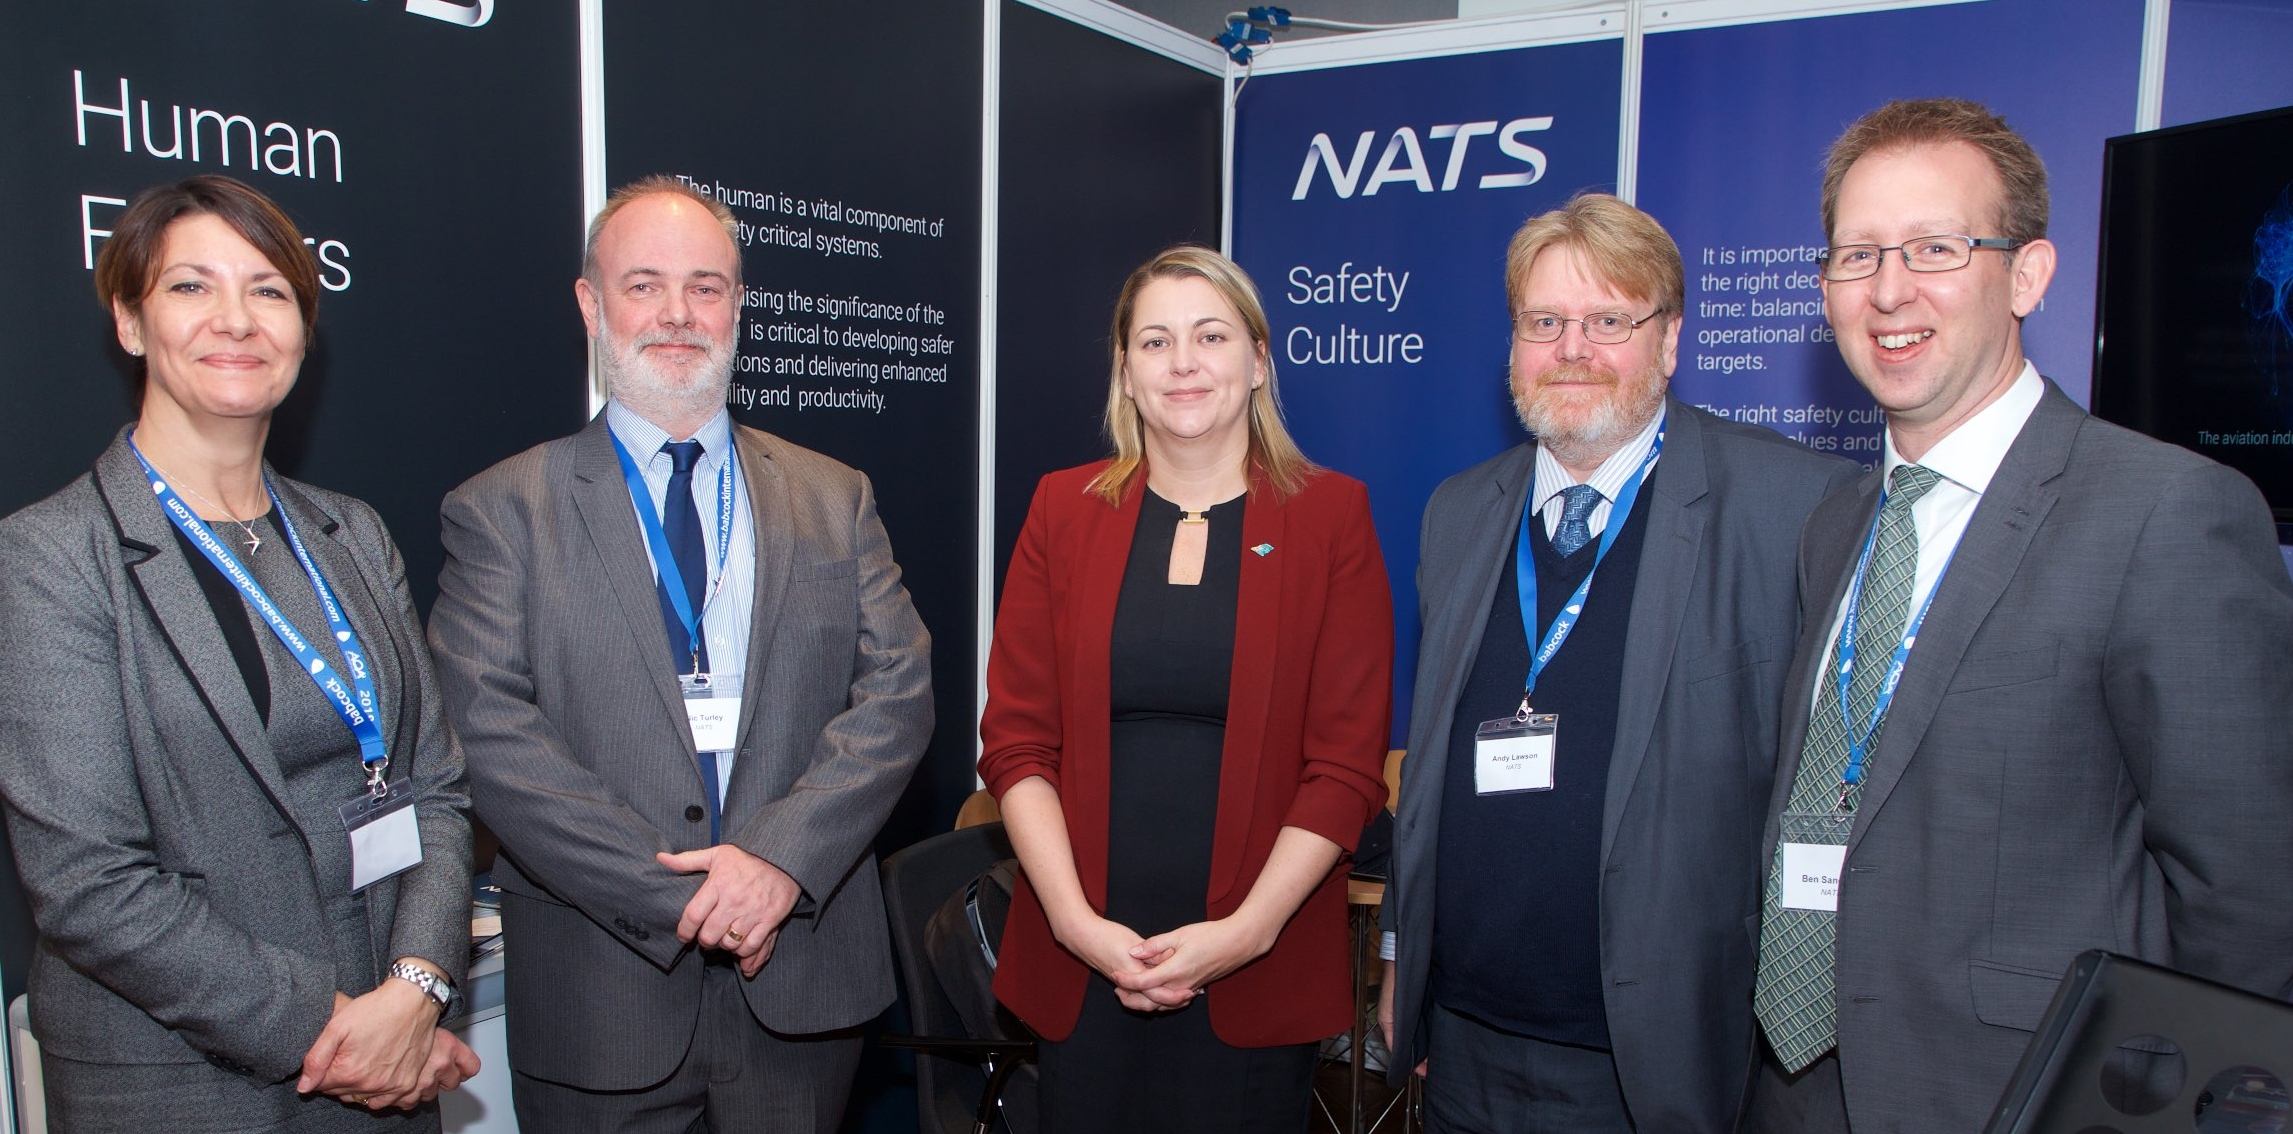 NATS Blog - NATS is a global leader in innovative air traffic control and airport solutions